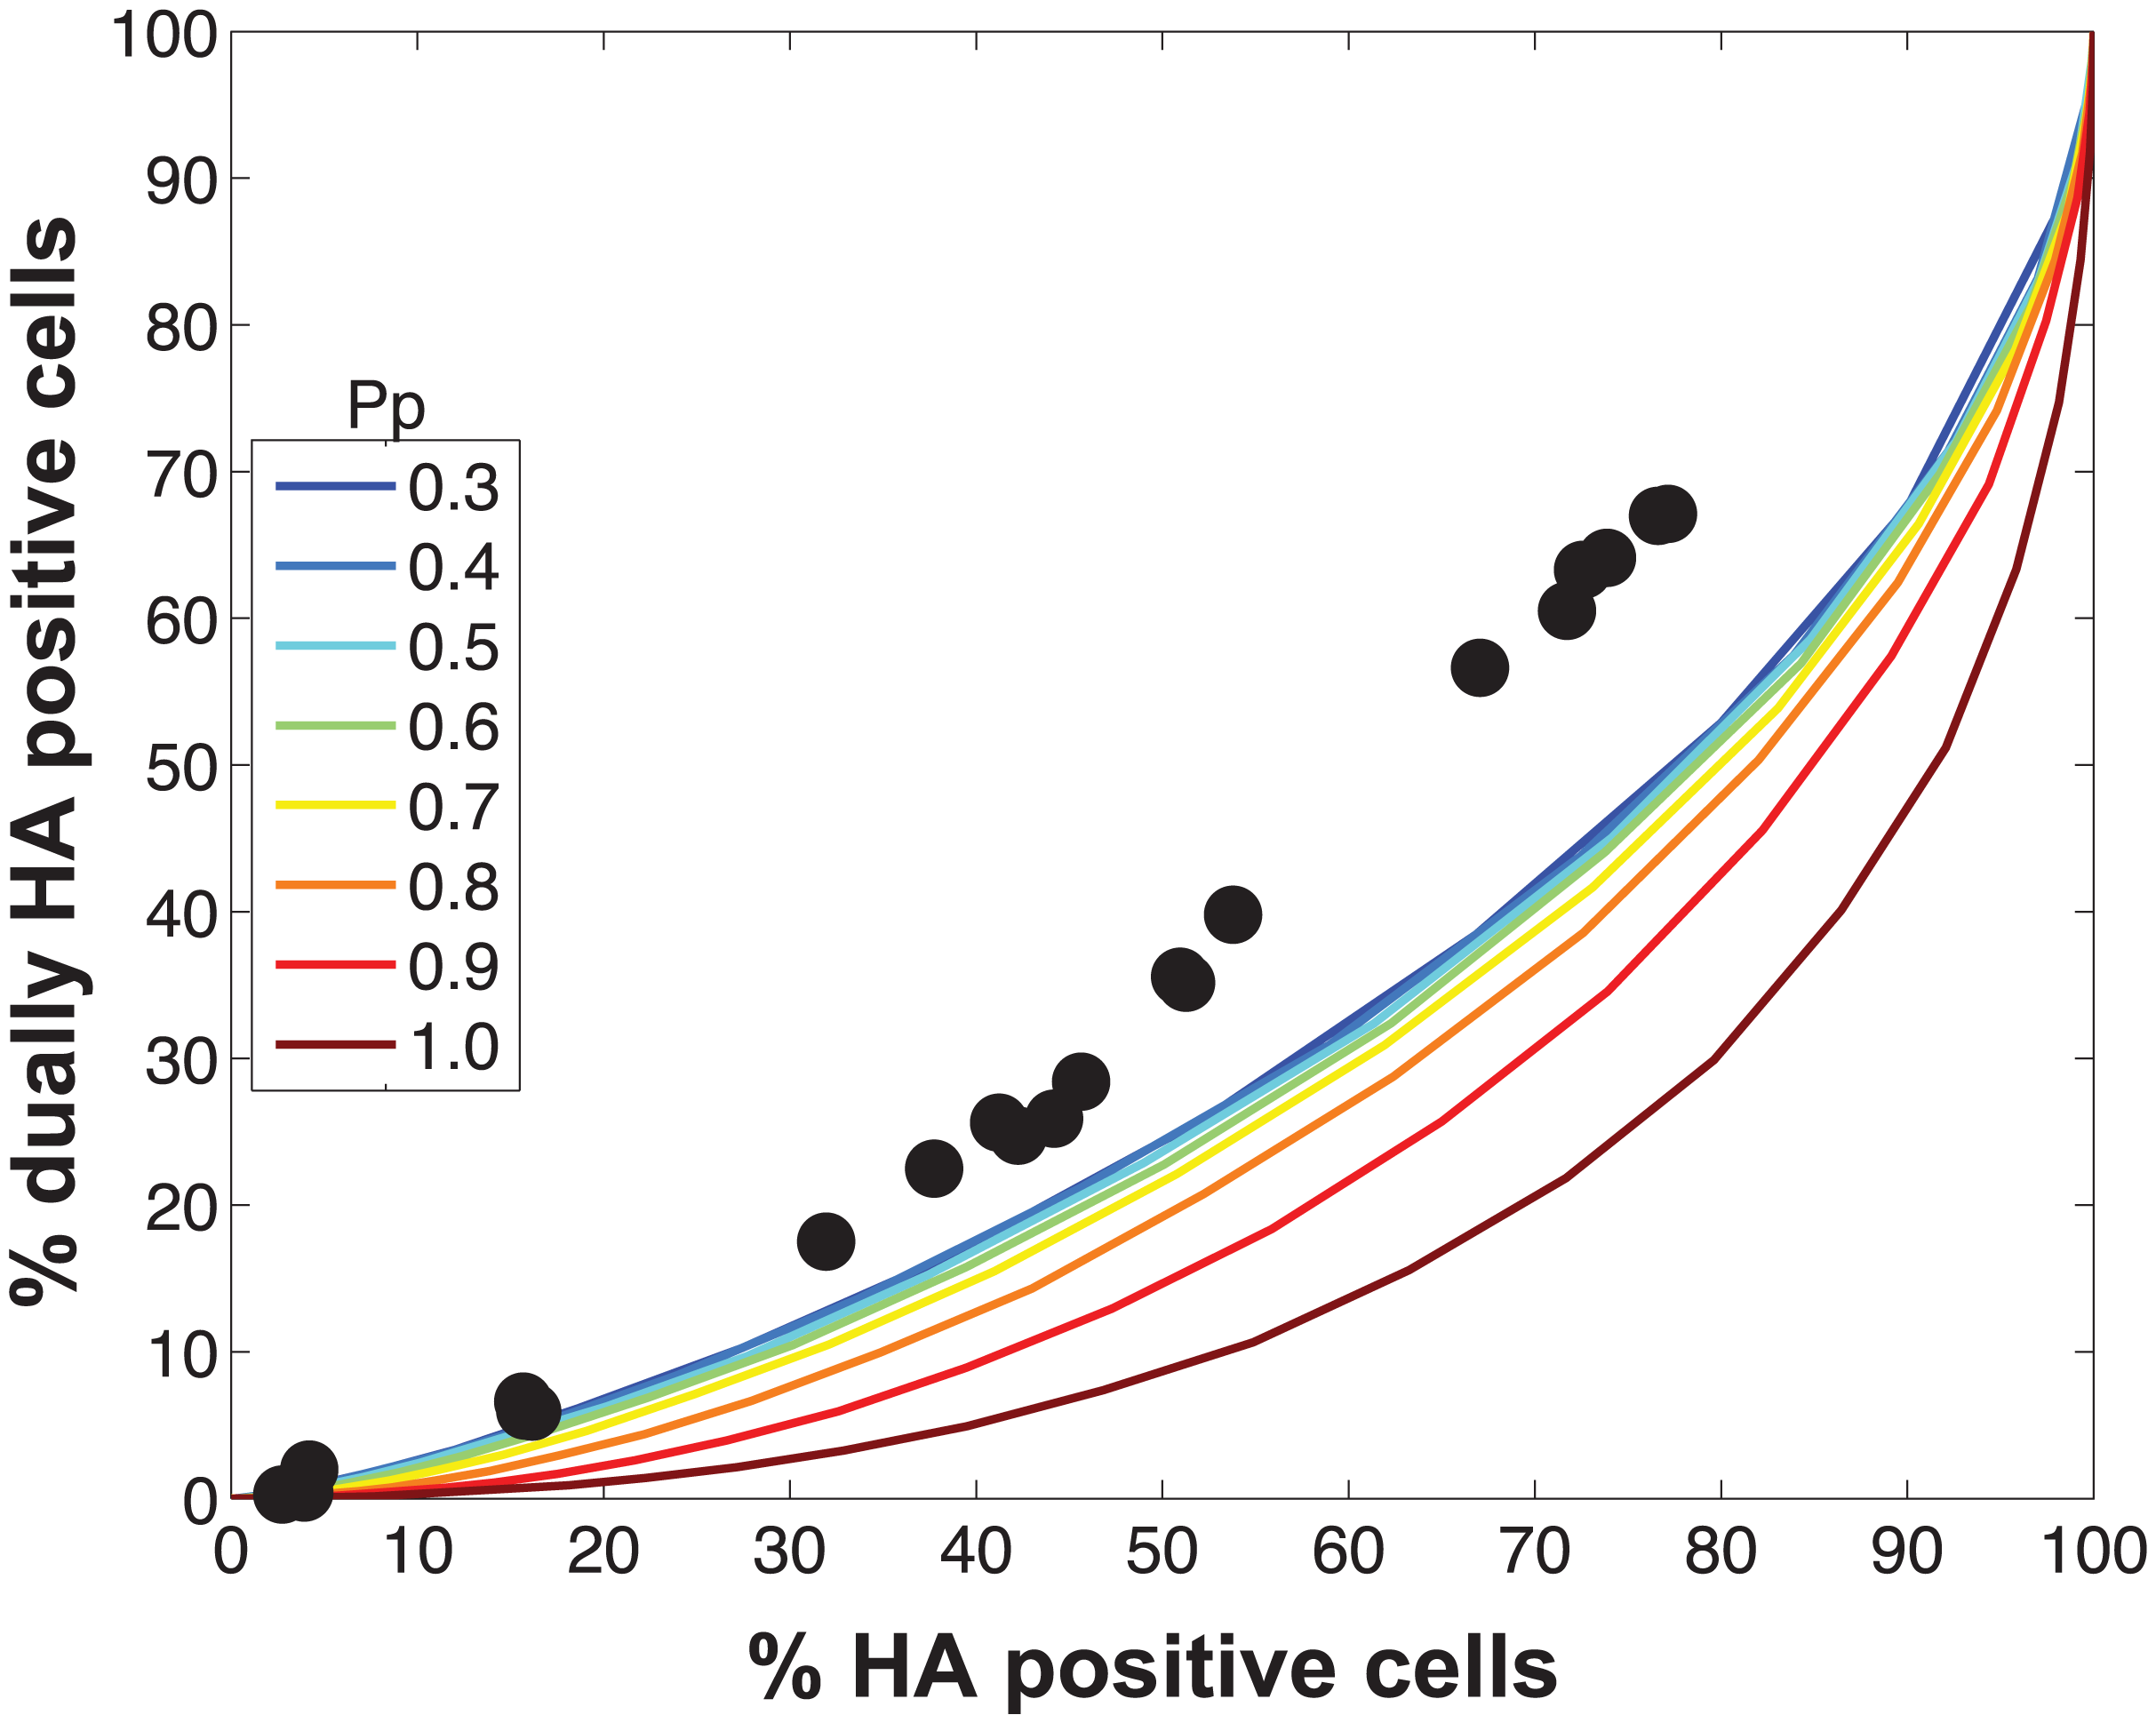 Modeled outcomes do not match the observed relationship between HA positive and dually HA positive cells when P<sub>P</sub> is constant among the eight segments.